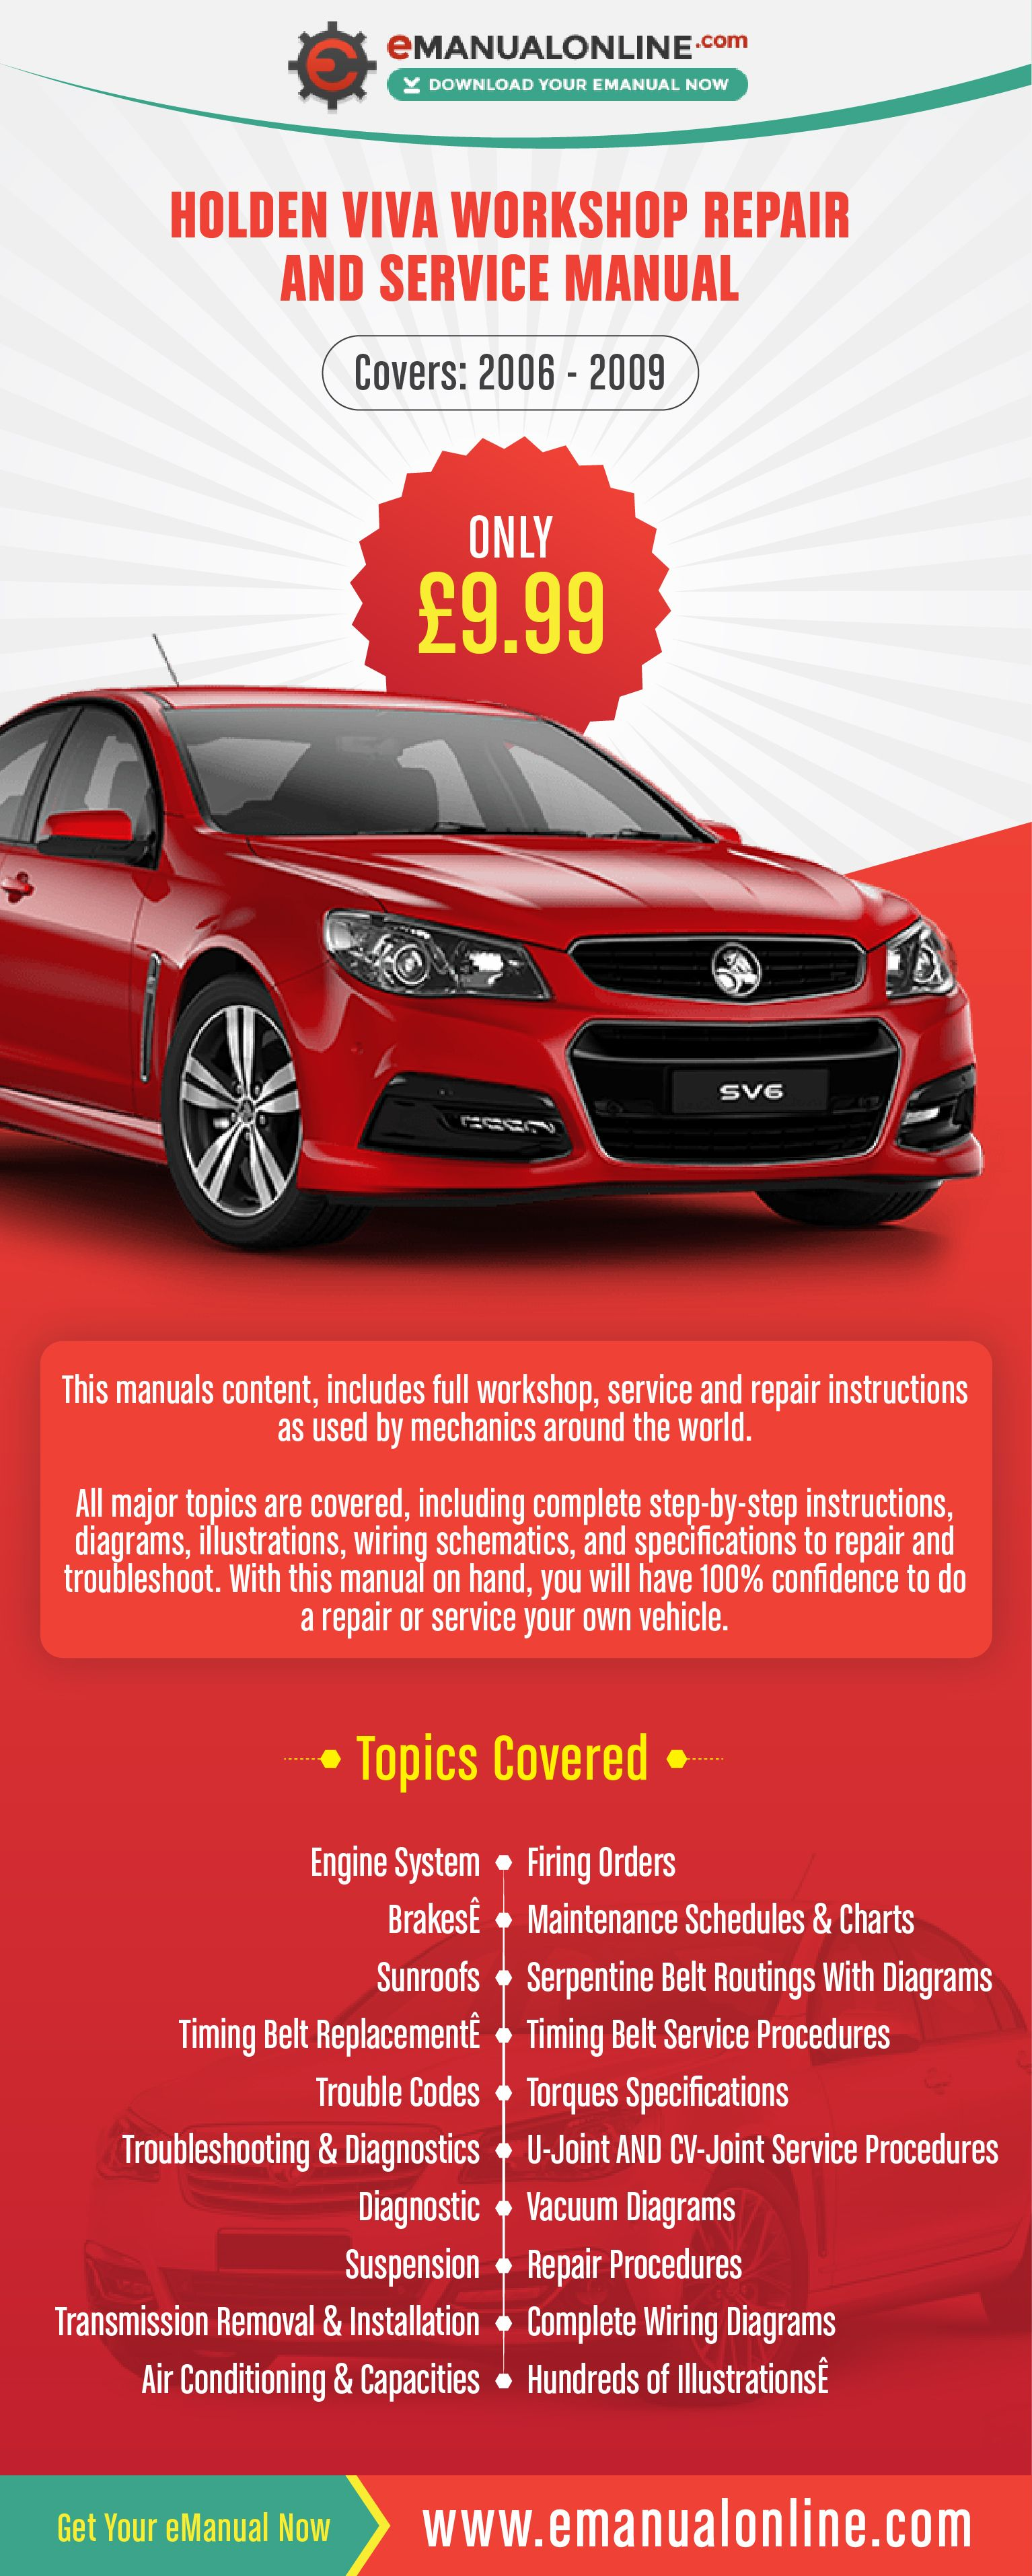 hight resolution of holden viva workshop repair and service manual this manuals content includes full workshop service and repair instructions as used by mechanics around the